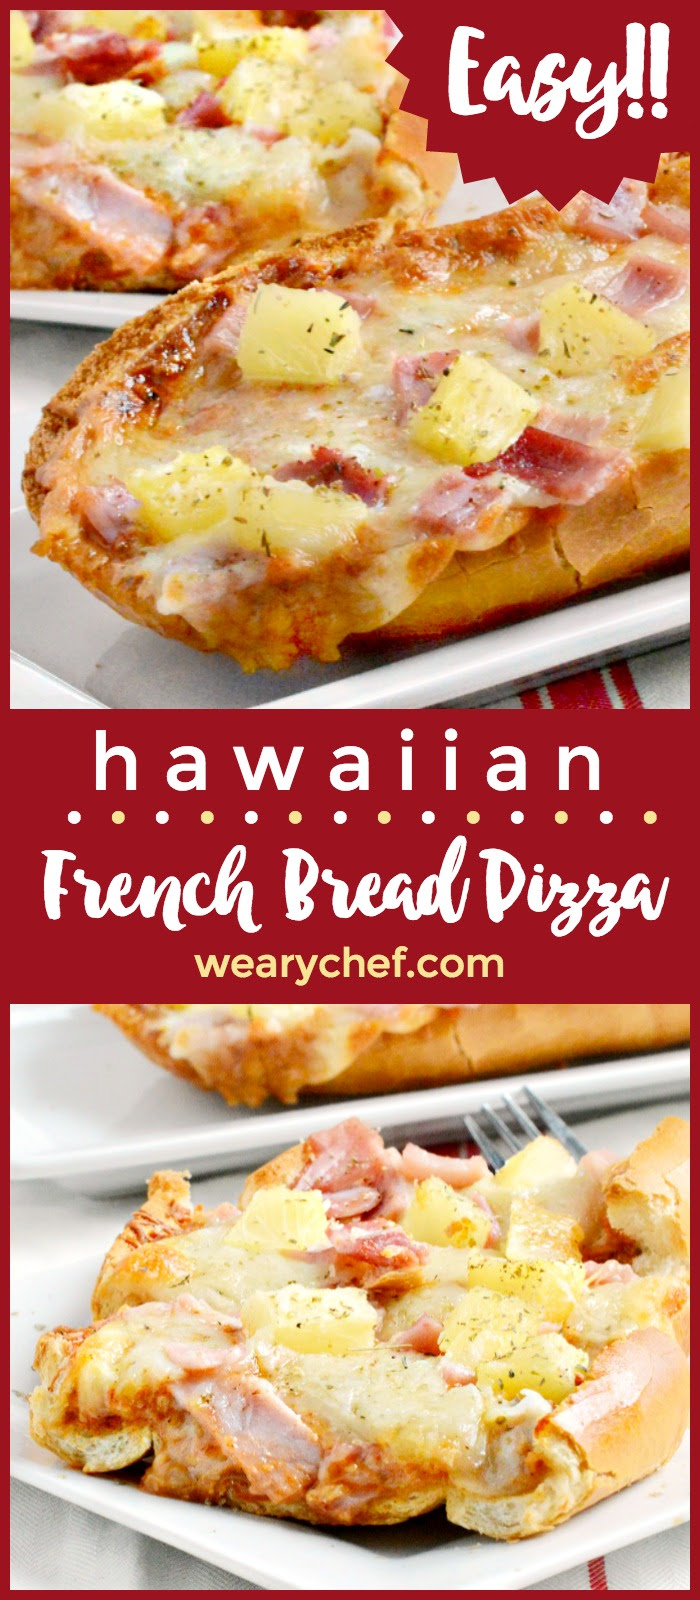 Hawaiian French Bread Pizza - The Weary Chef